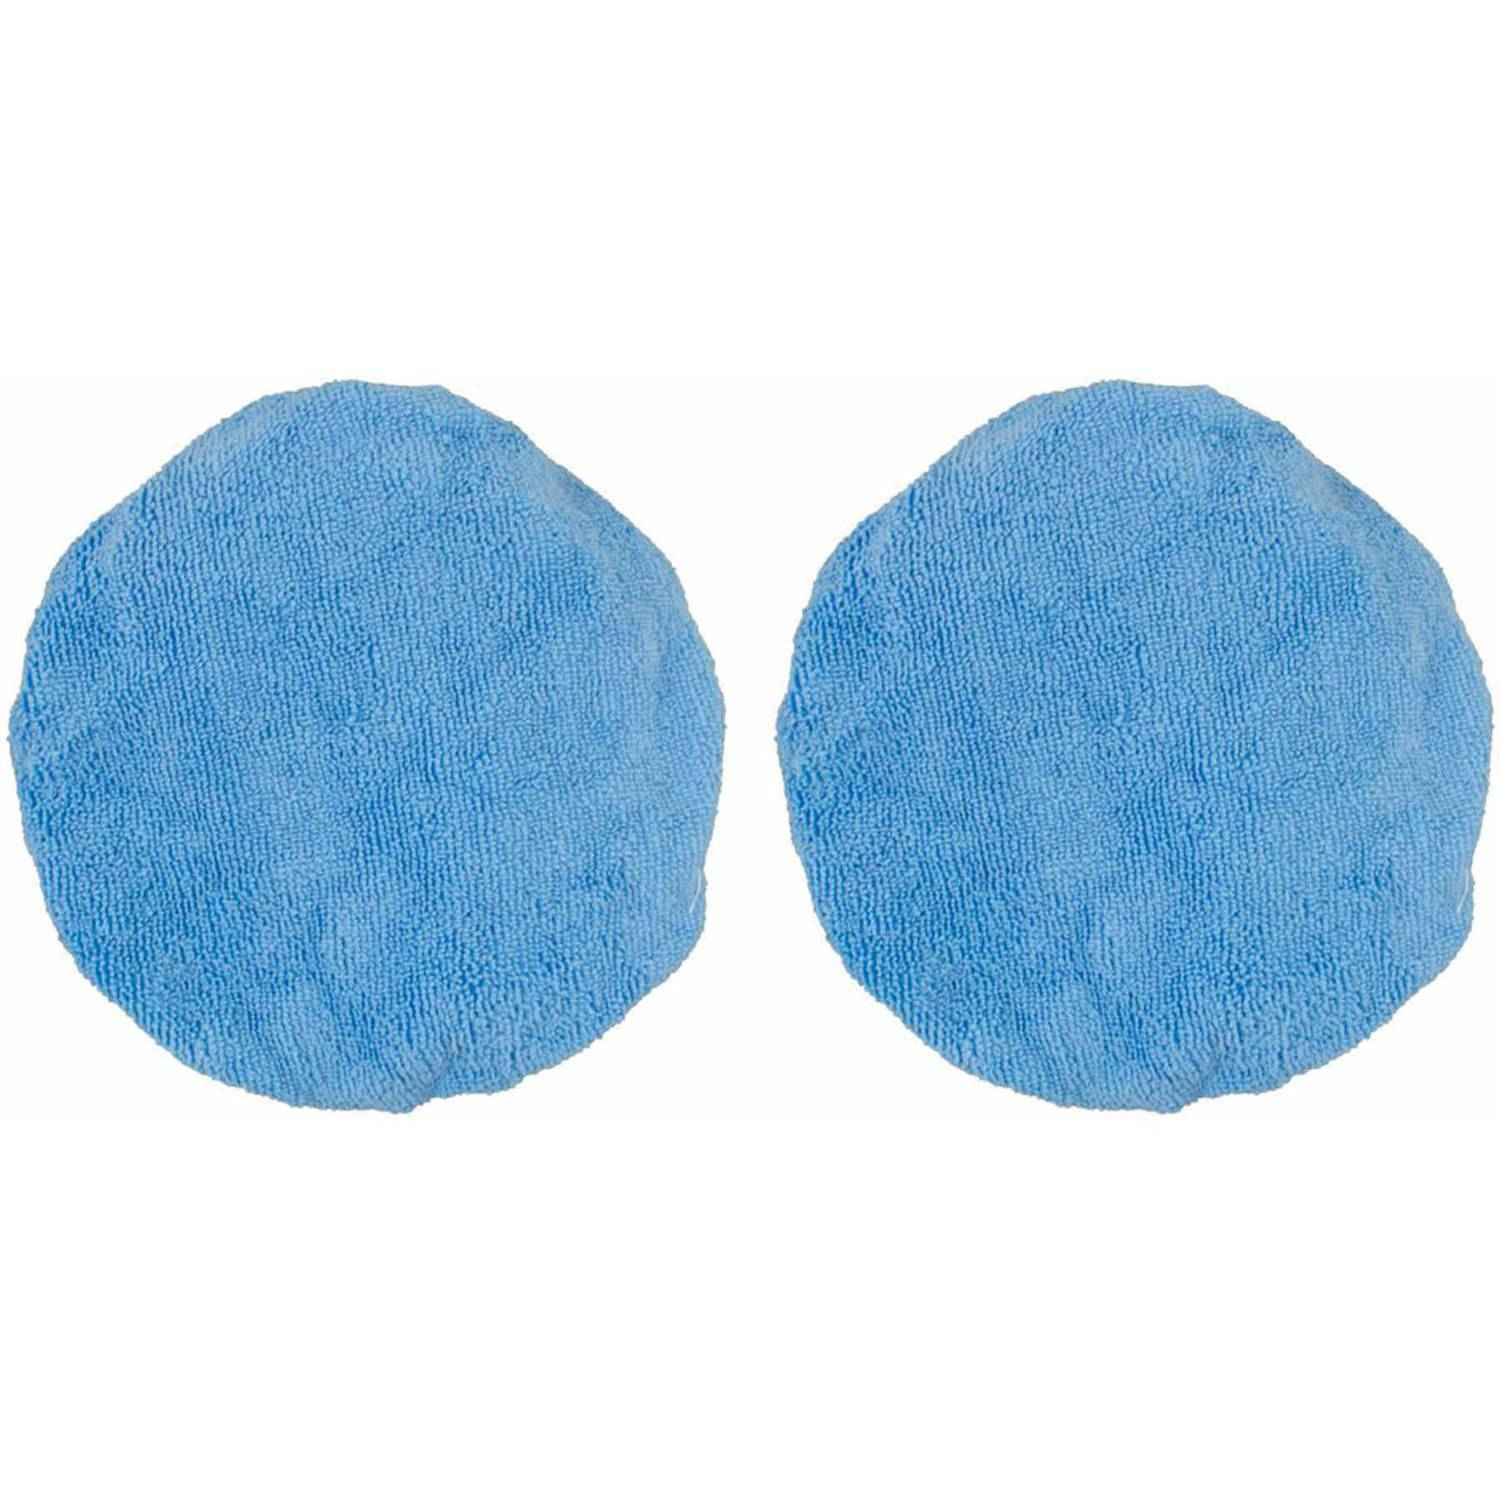 "Detailer's Choice 6-356 5"" to 6"" Microfiber Bonnets, 2-Pack"